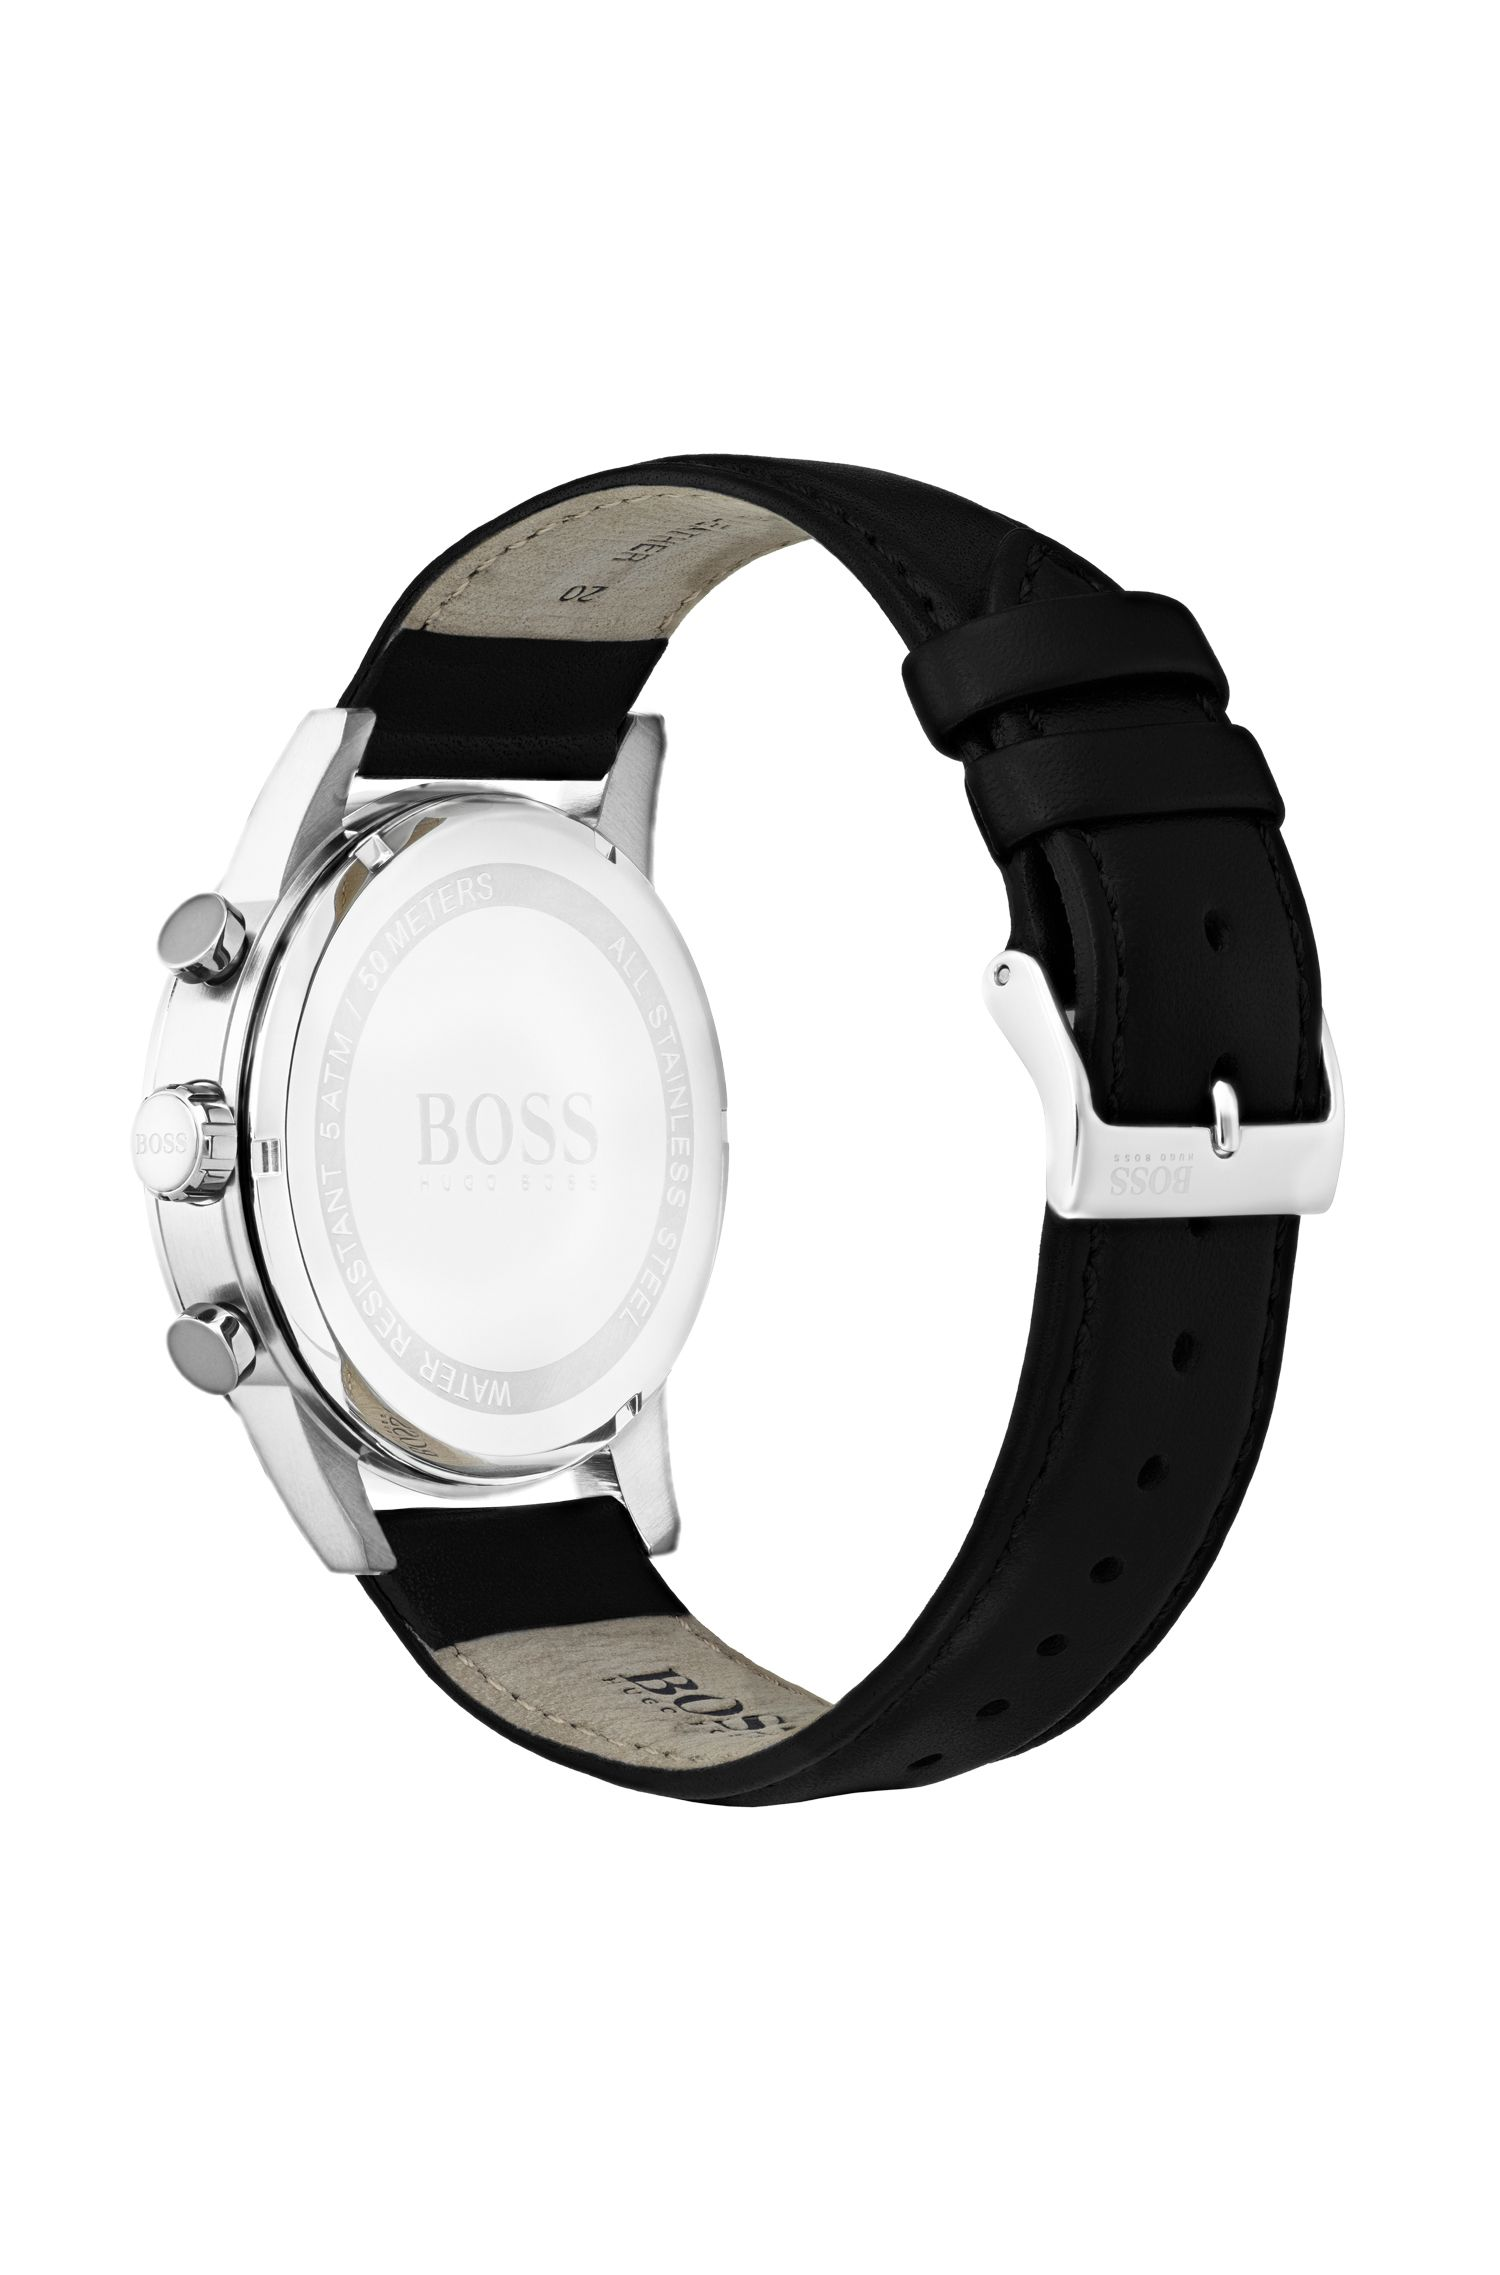 Stainless-steel watch with black face and leather strap, Black